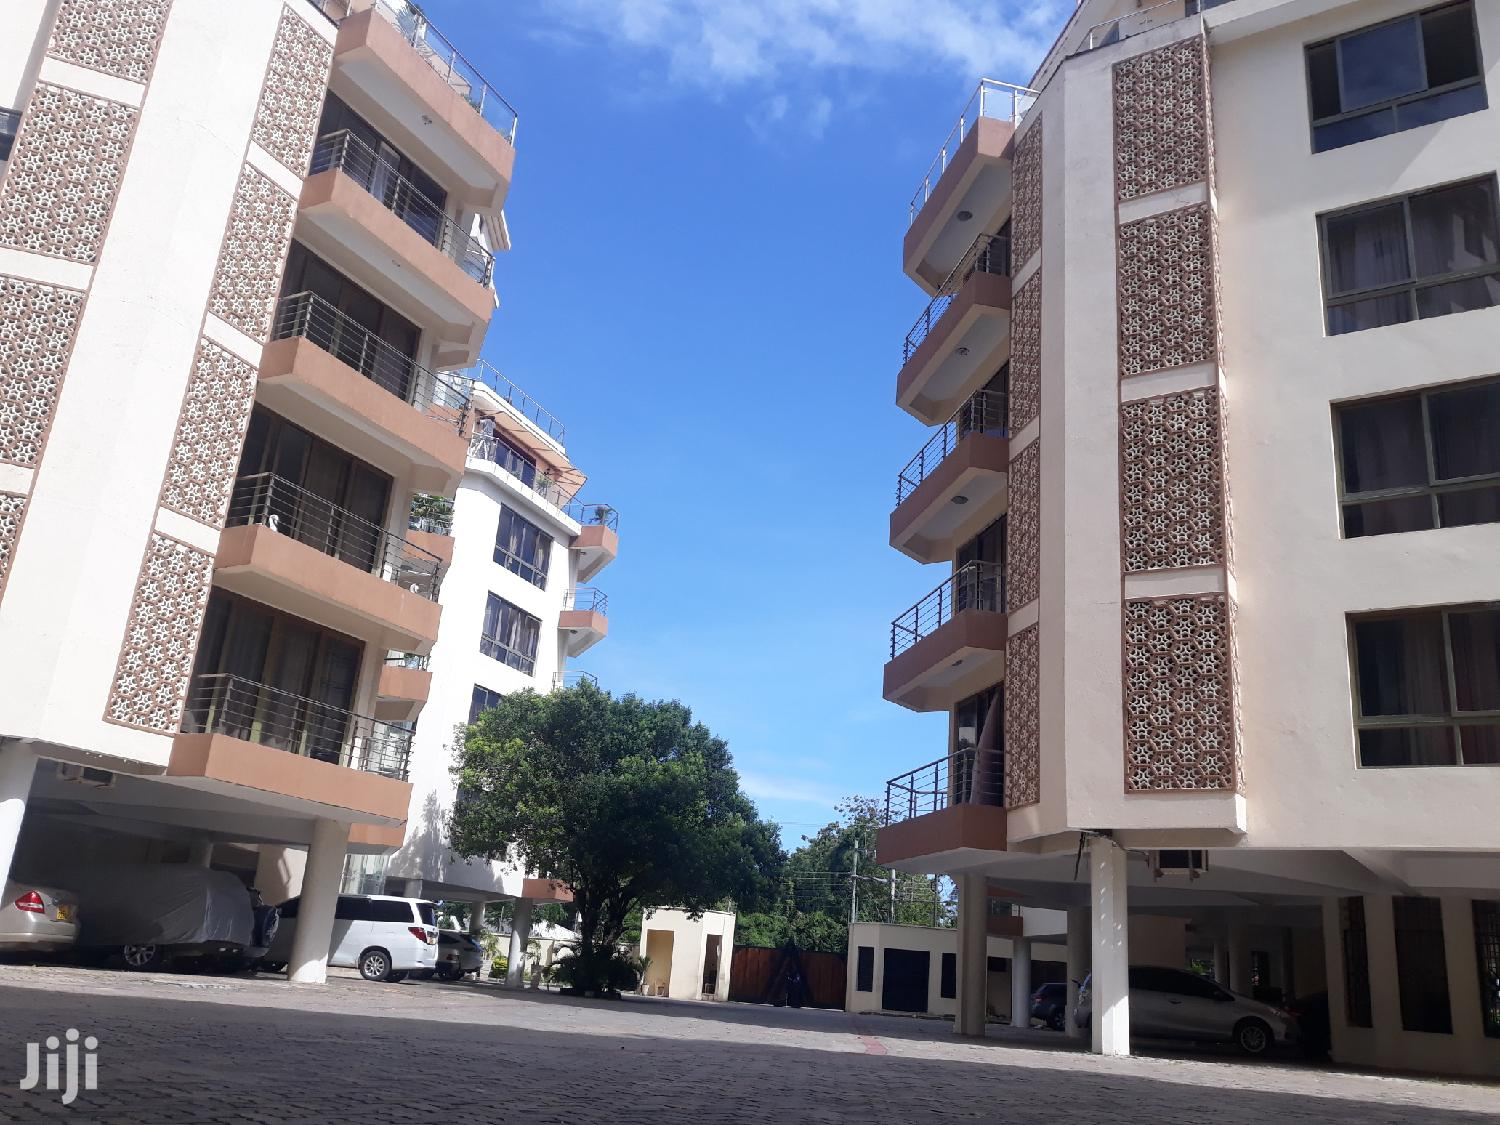 Nyali- 3 Bedroom Seaview Apartment for Rental Near the Beach | Houses & Apartments For Rent for sale in Nyali, Mombasa, Kenya